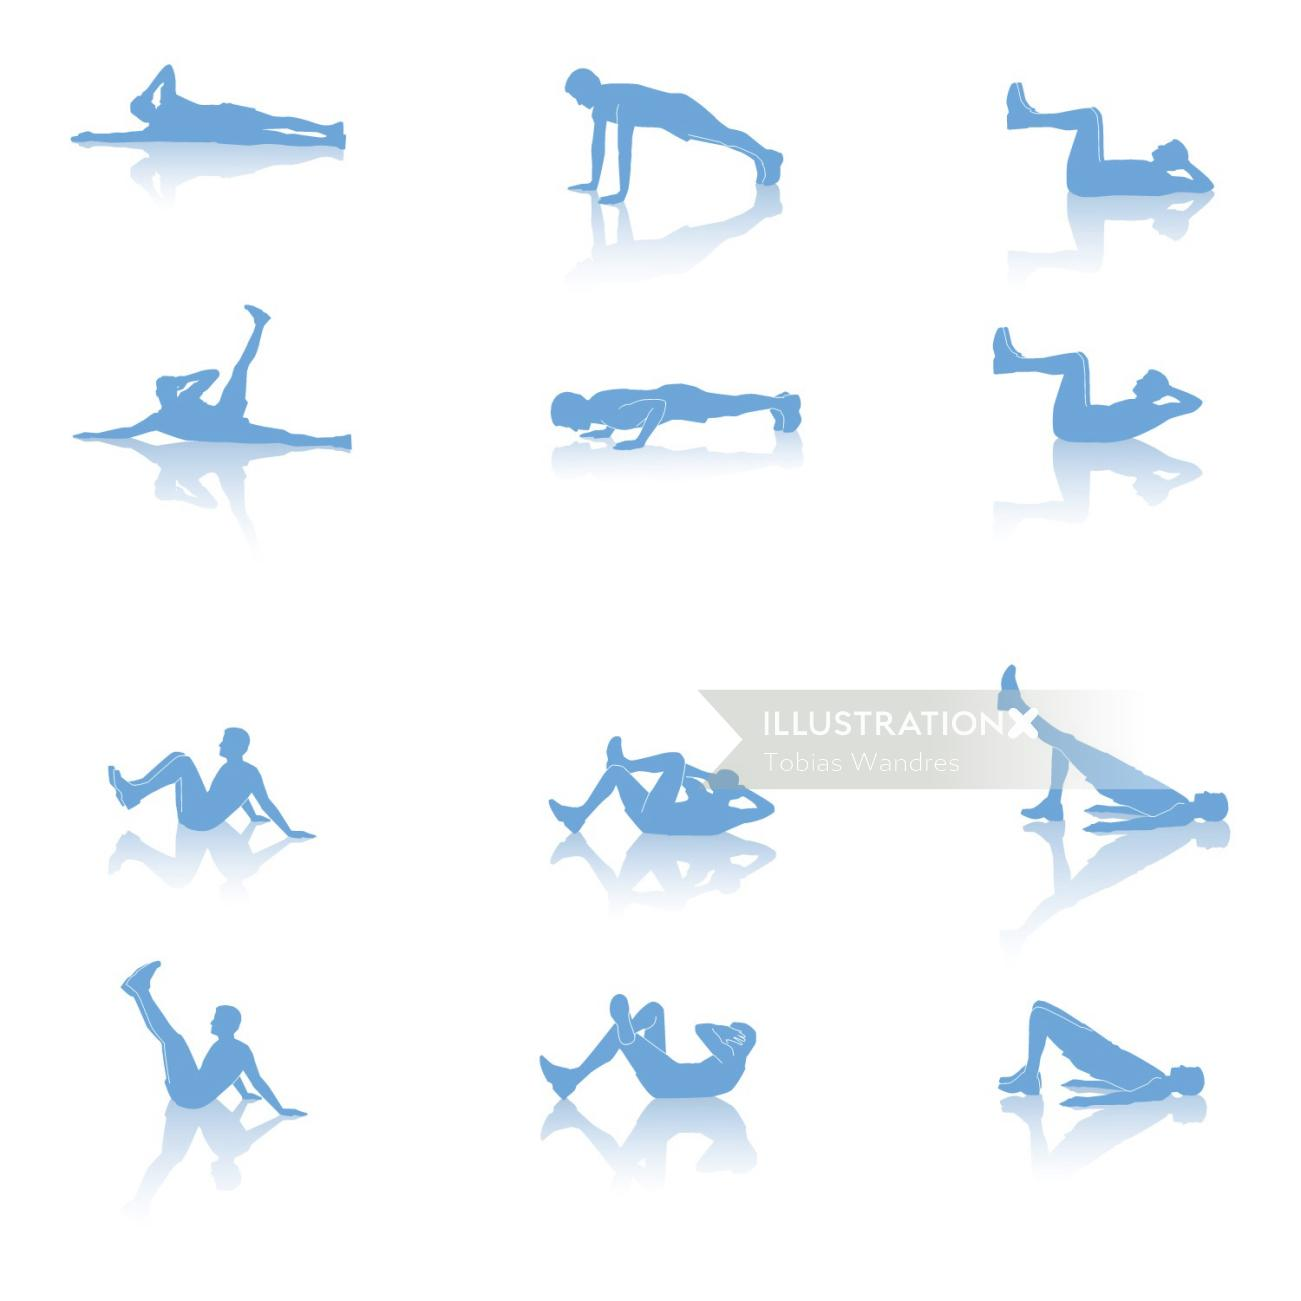 An illustration of exercise positions during coronavirus